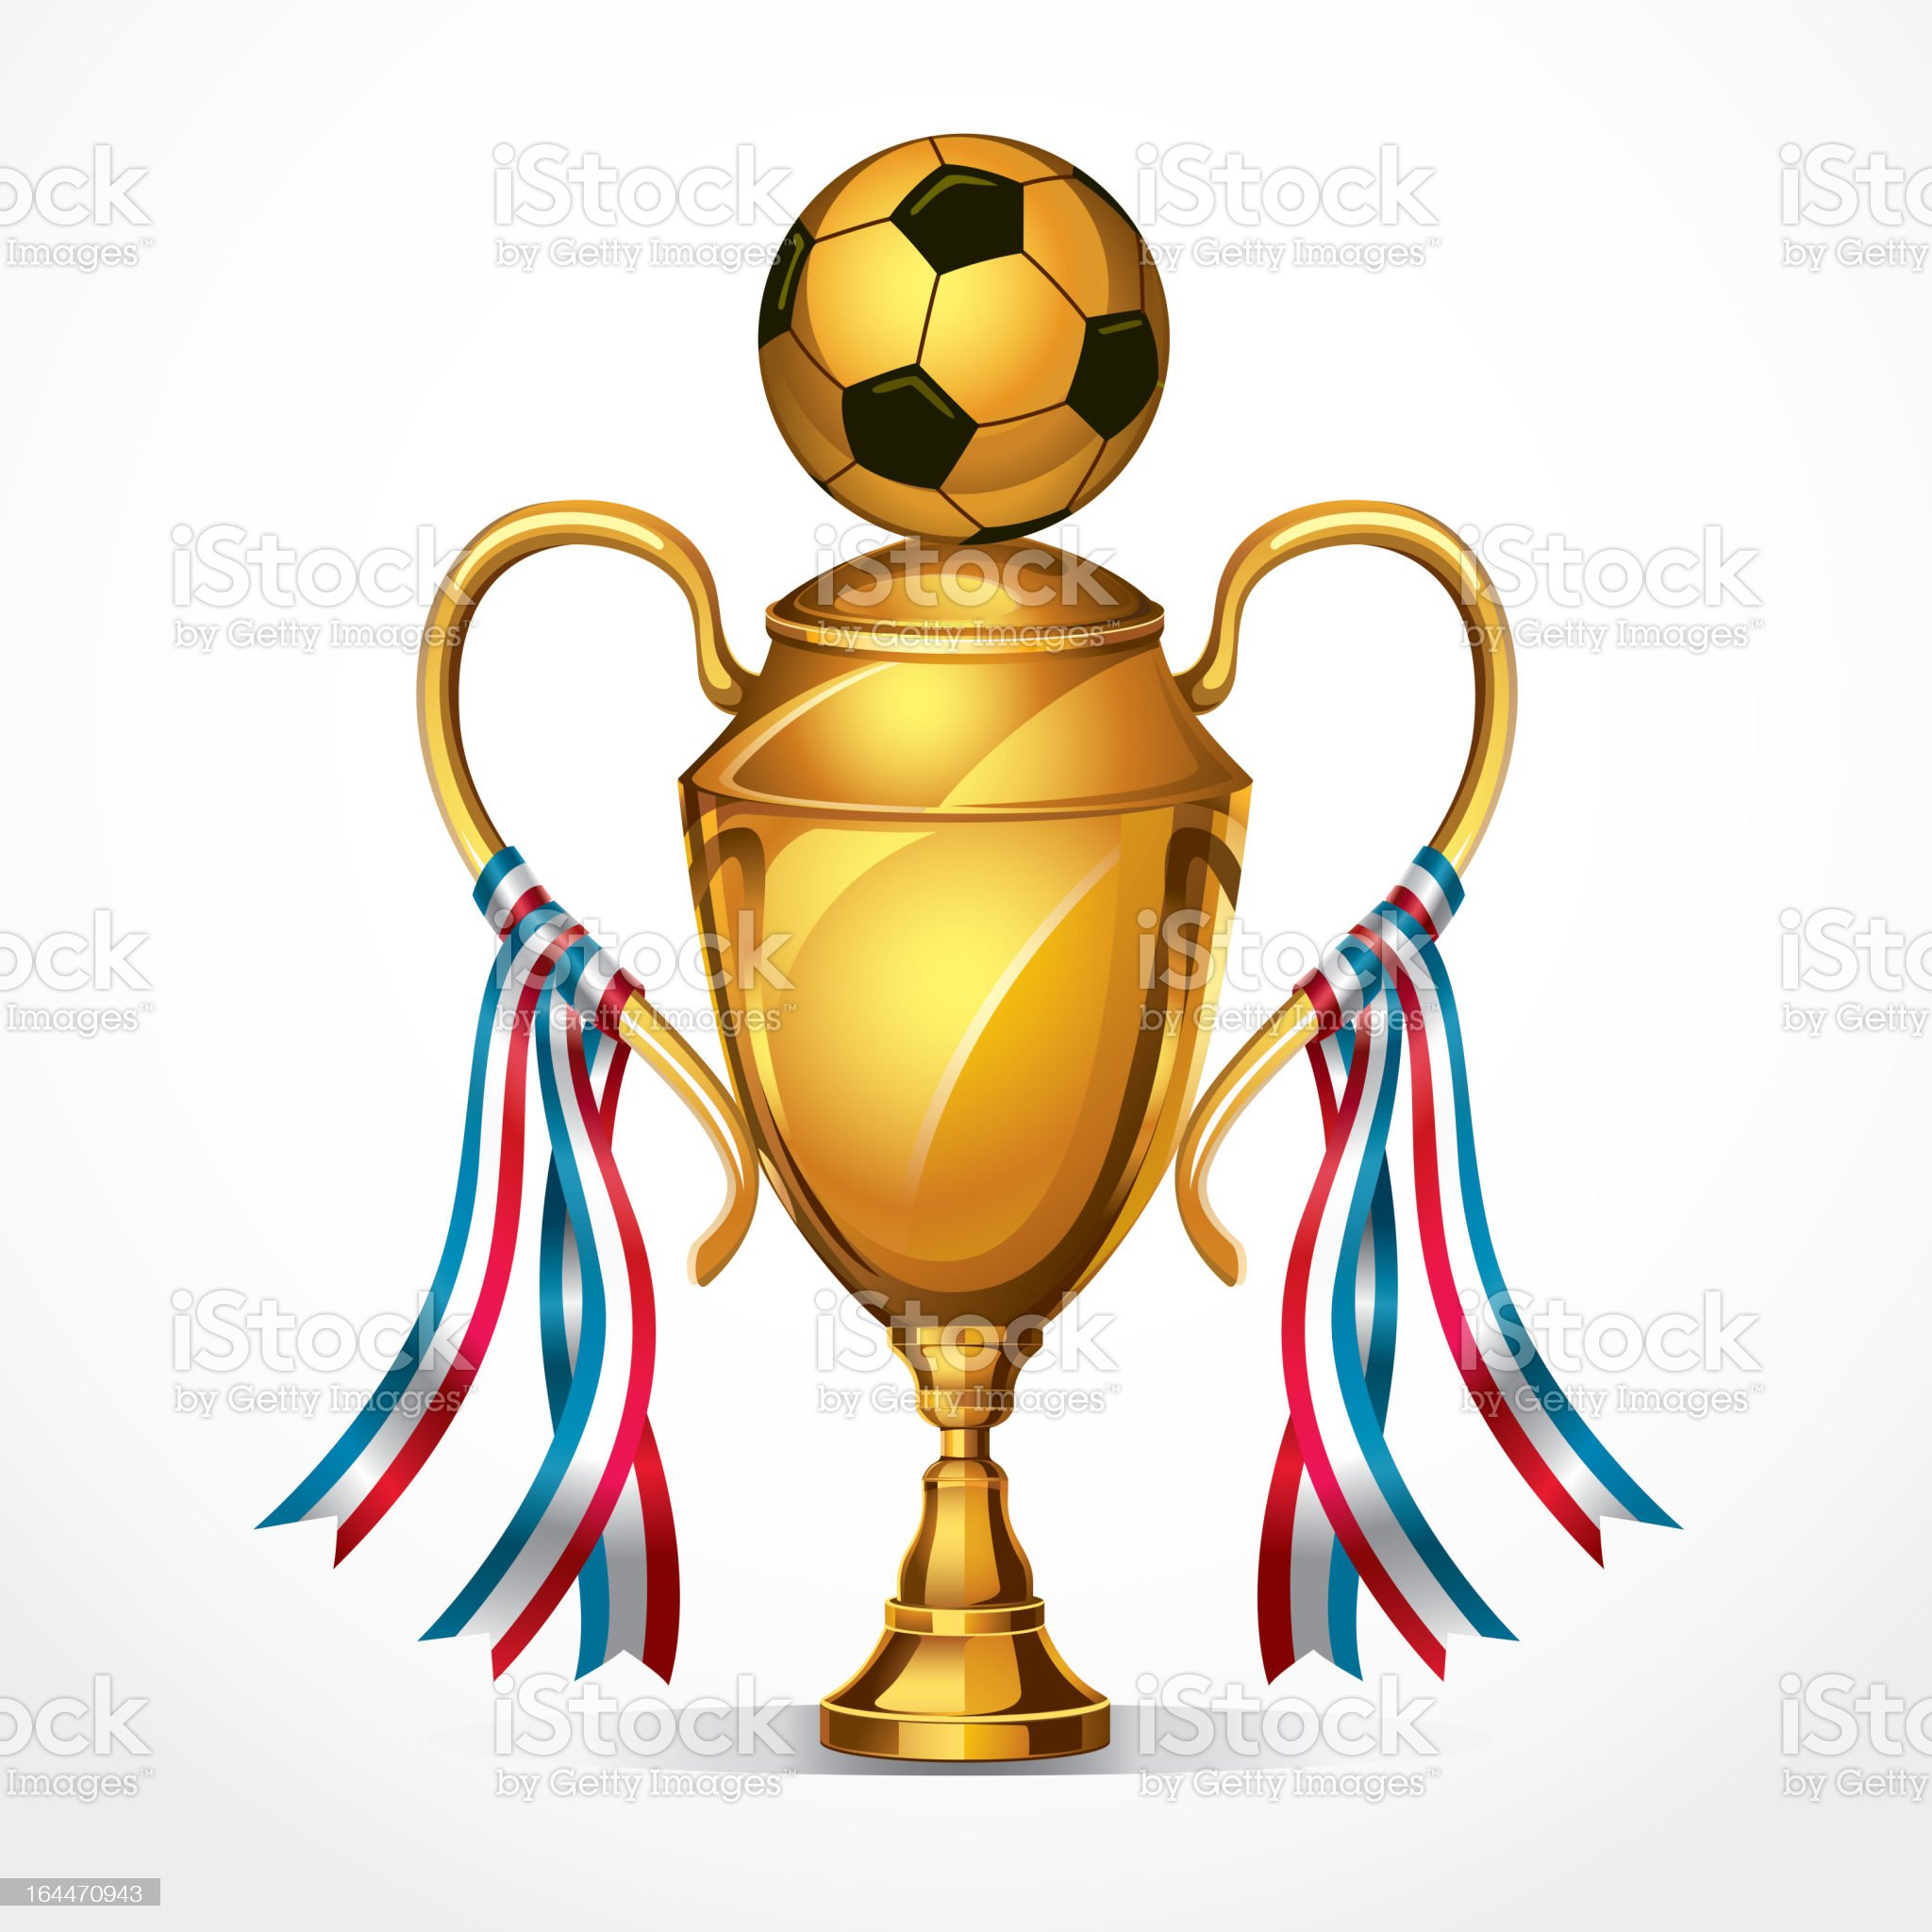 Soccer Golden award trophy and ribbon. royalty-free stock vector art